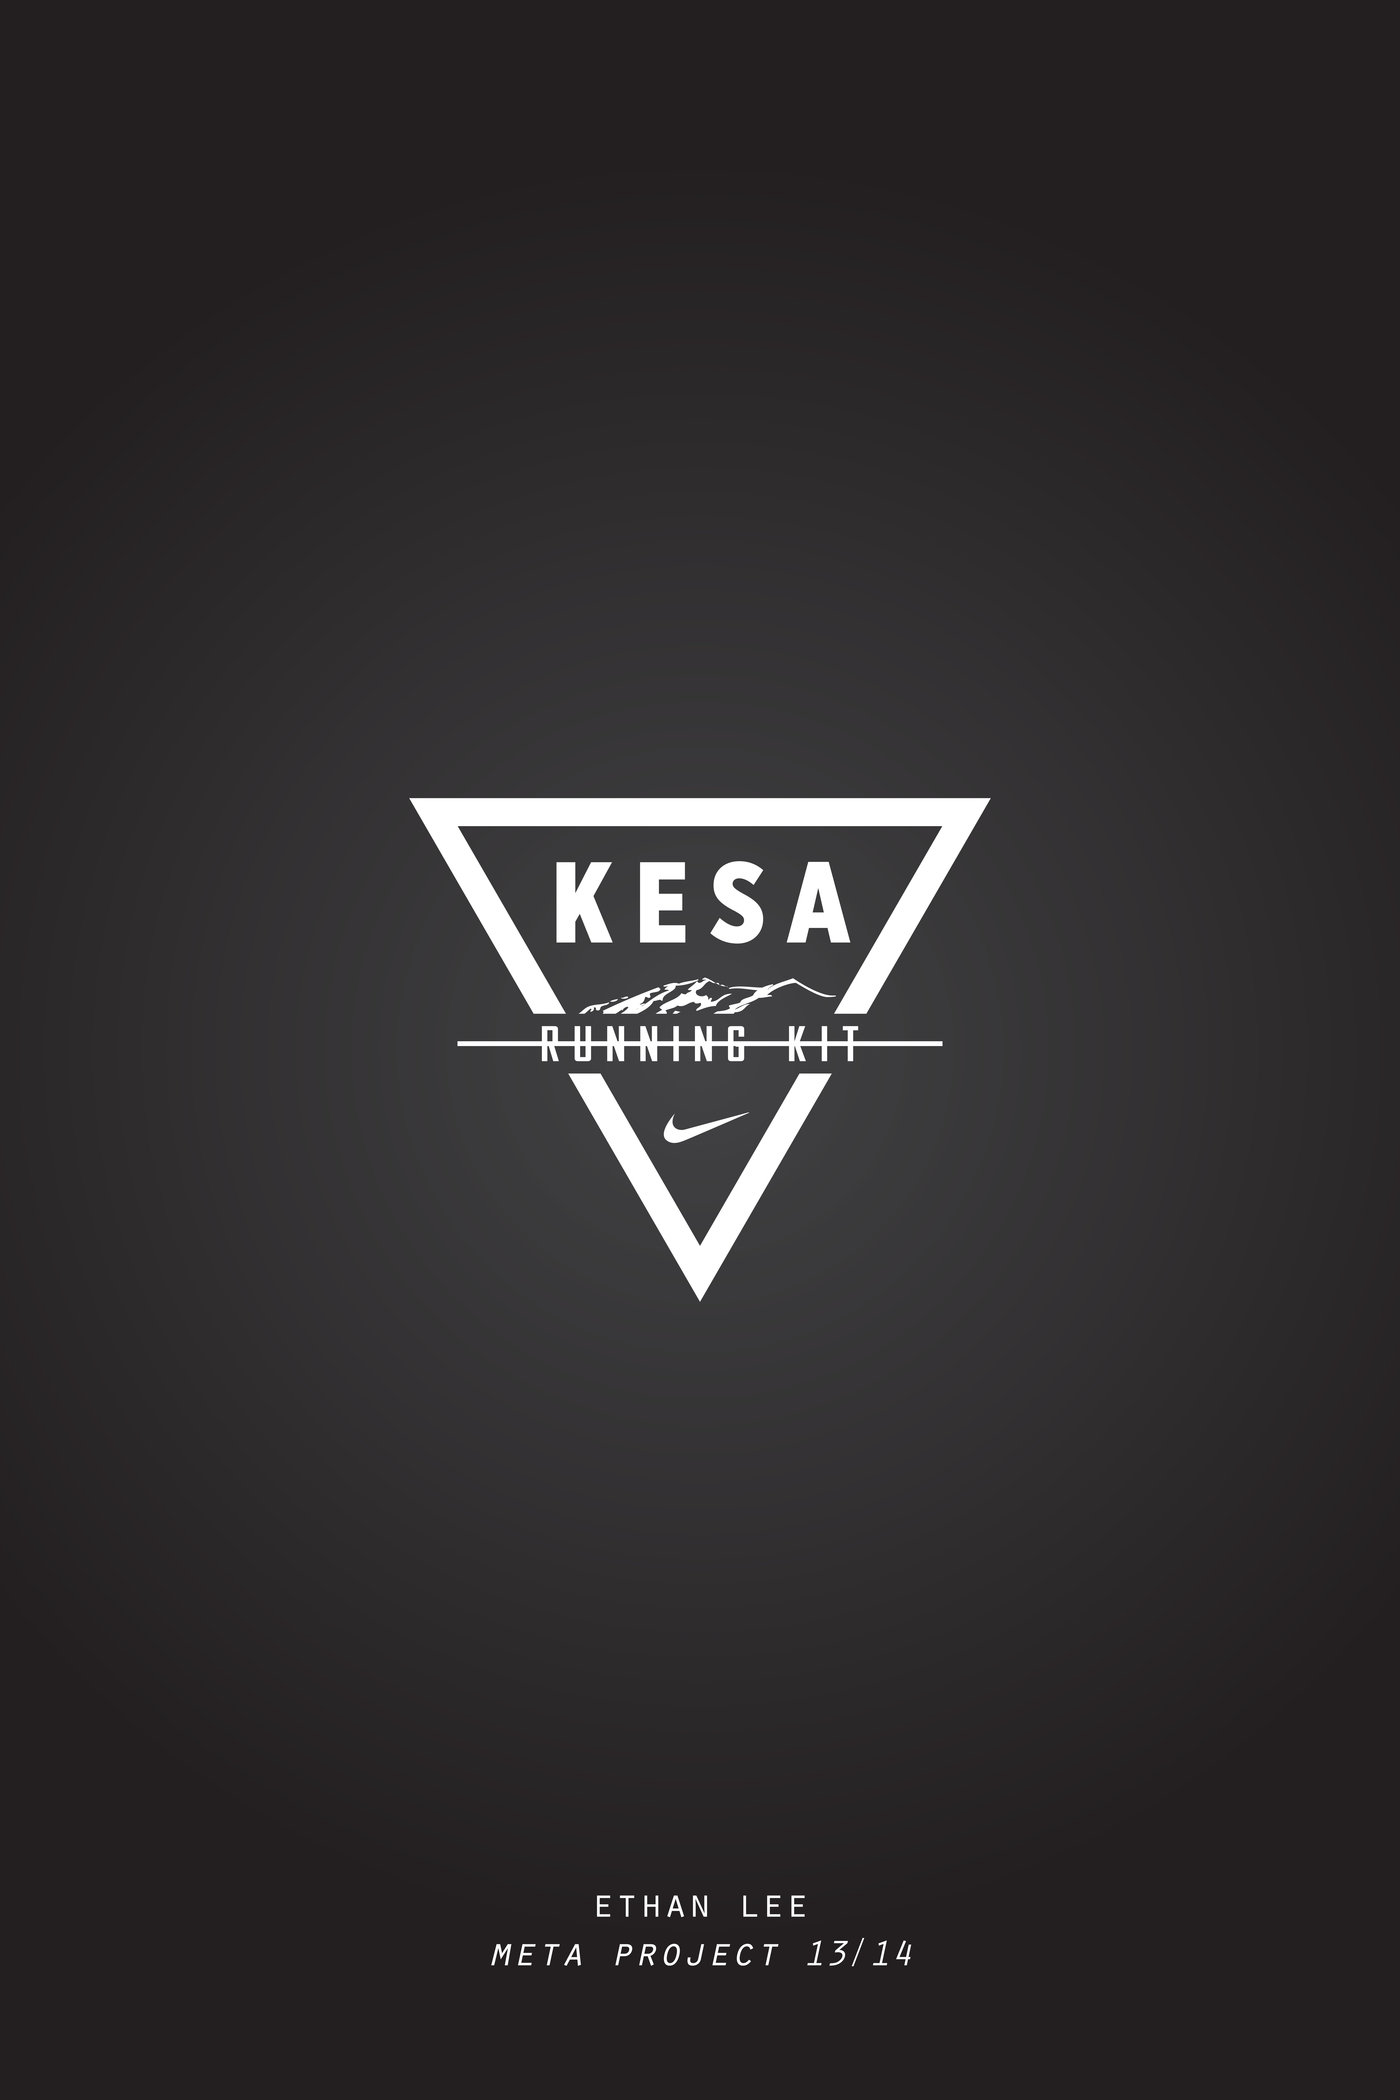 OCAD Thesis Project - FINAL: Nike Kesa Running Kit by Ethan Lee at  Coroflot.com